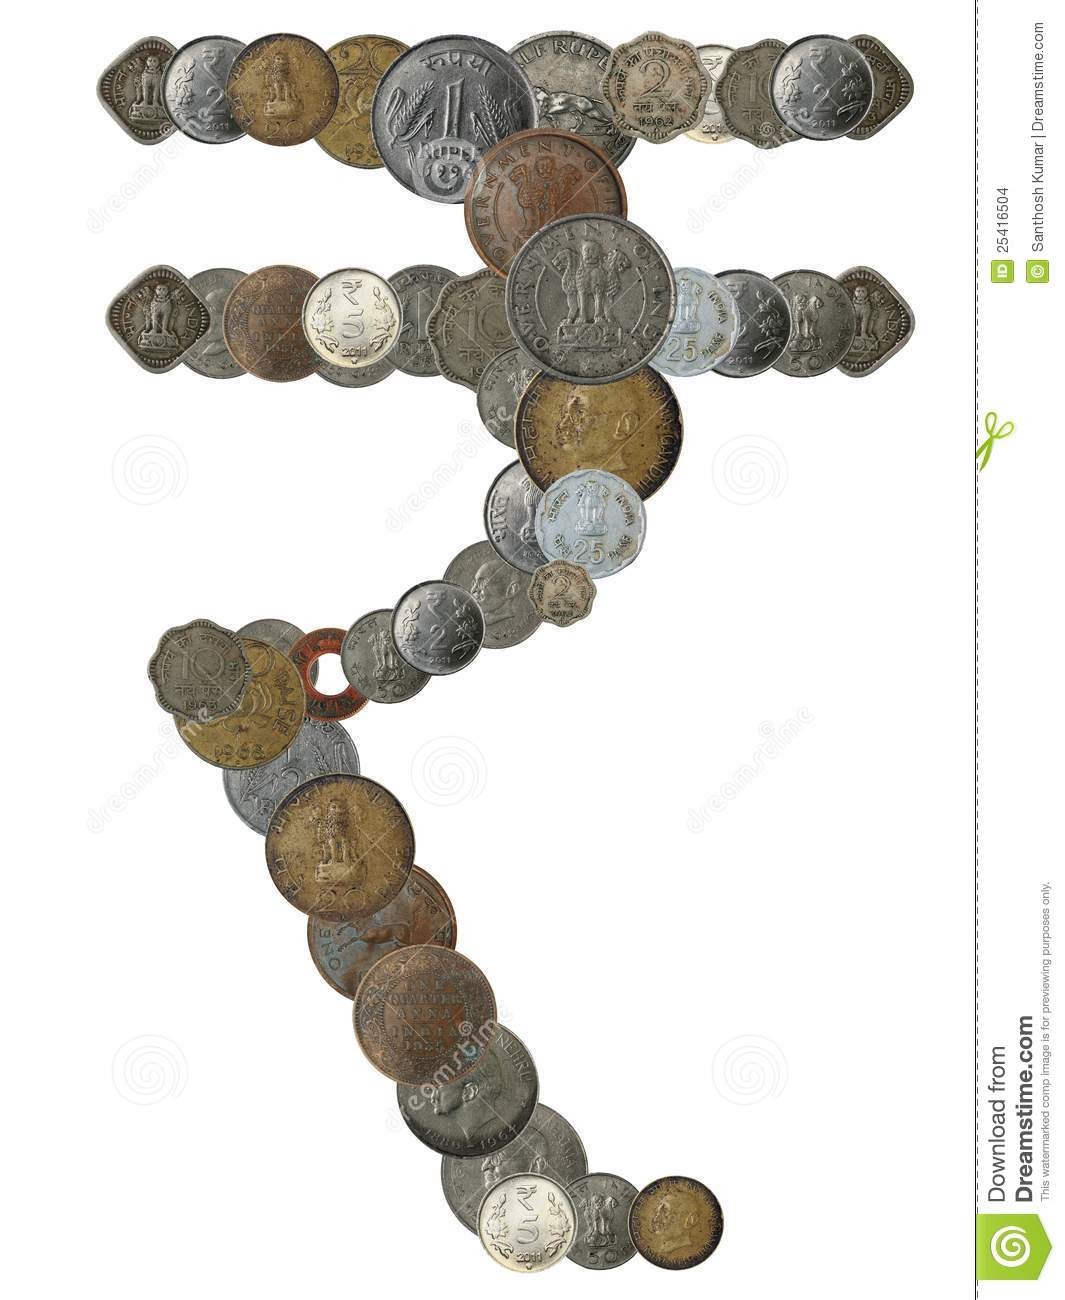 Indian rupee symbol created by arranging coins stock photo image indian rupee symbol created by arranging coins biocorpaavc Choice Image